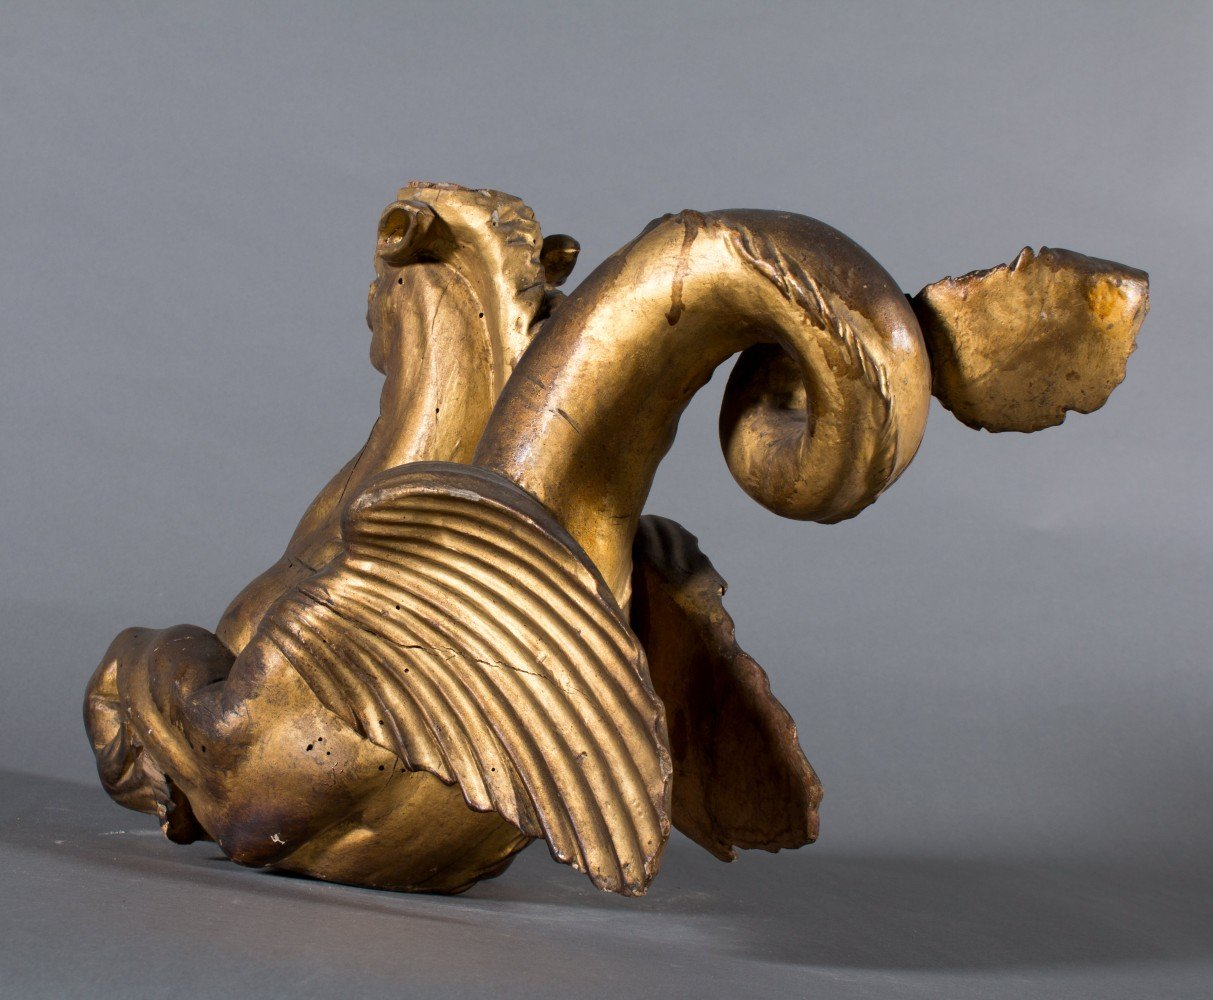 Pair of Carved Gilt 18th/19th Century Italian Hippocampi